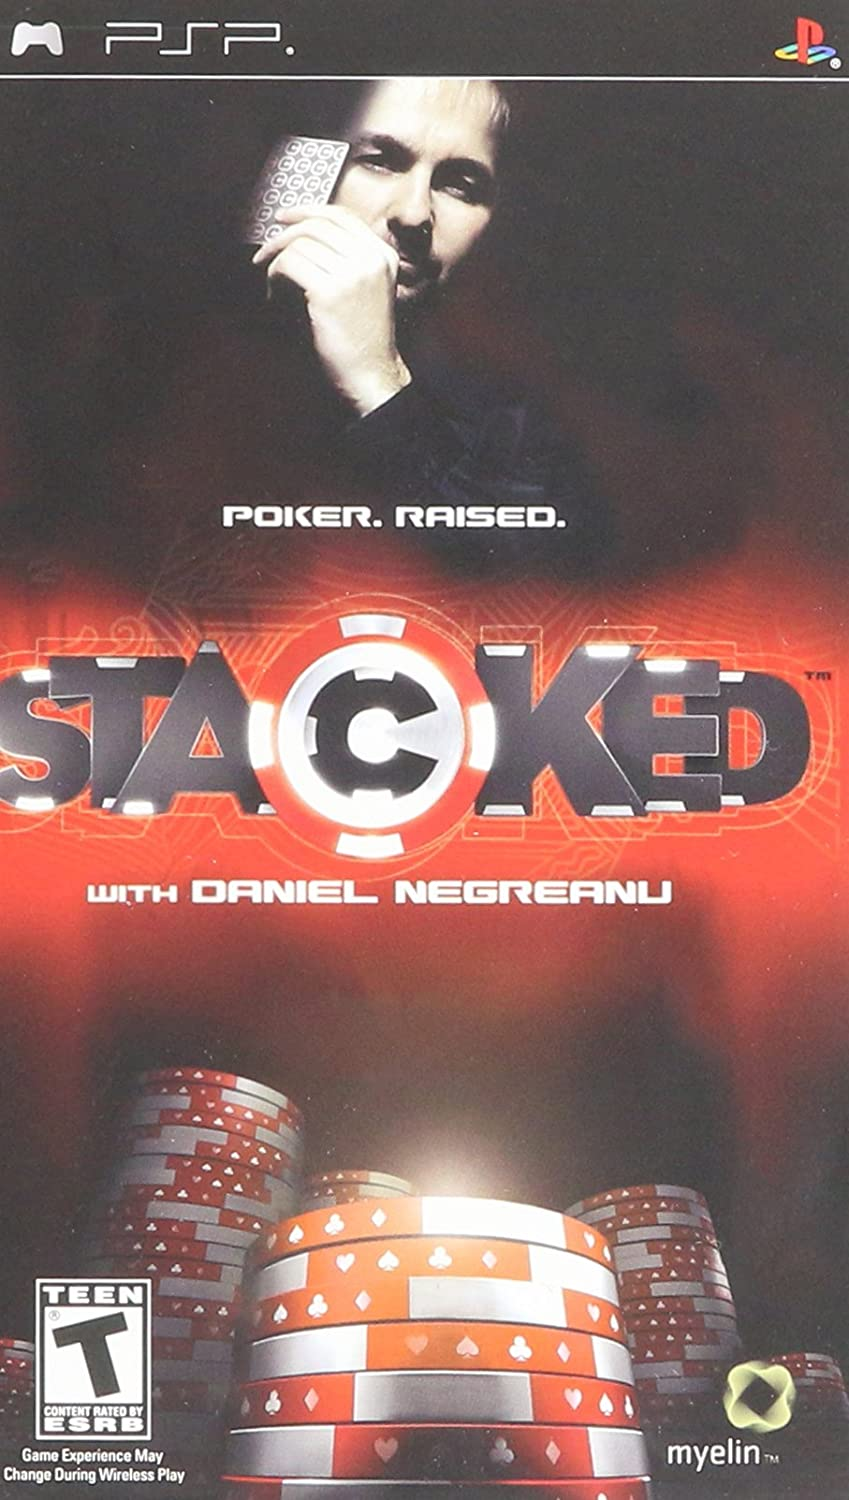 Stacked with Daniel Negreanu - Sony PSP